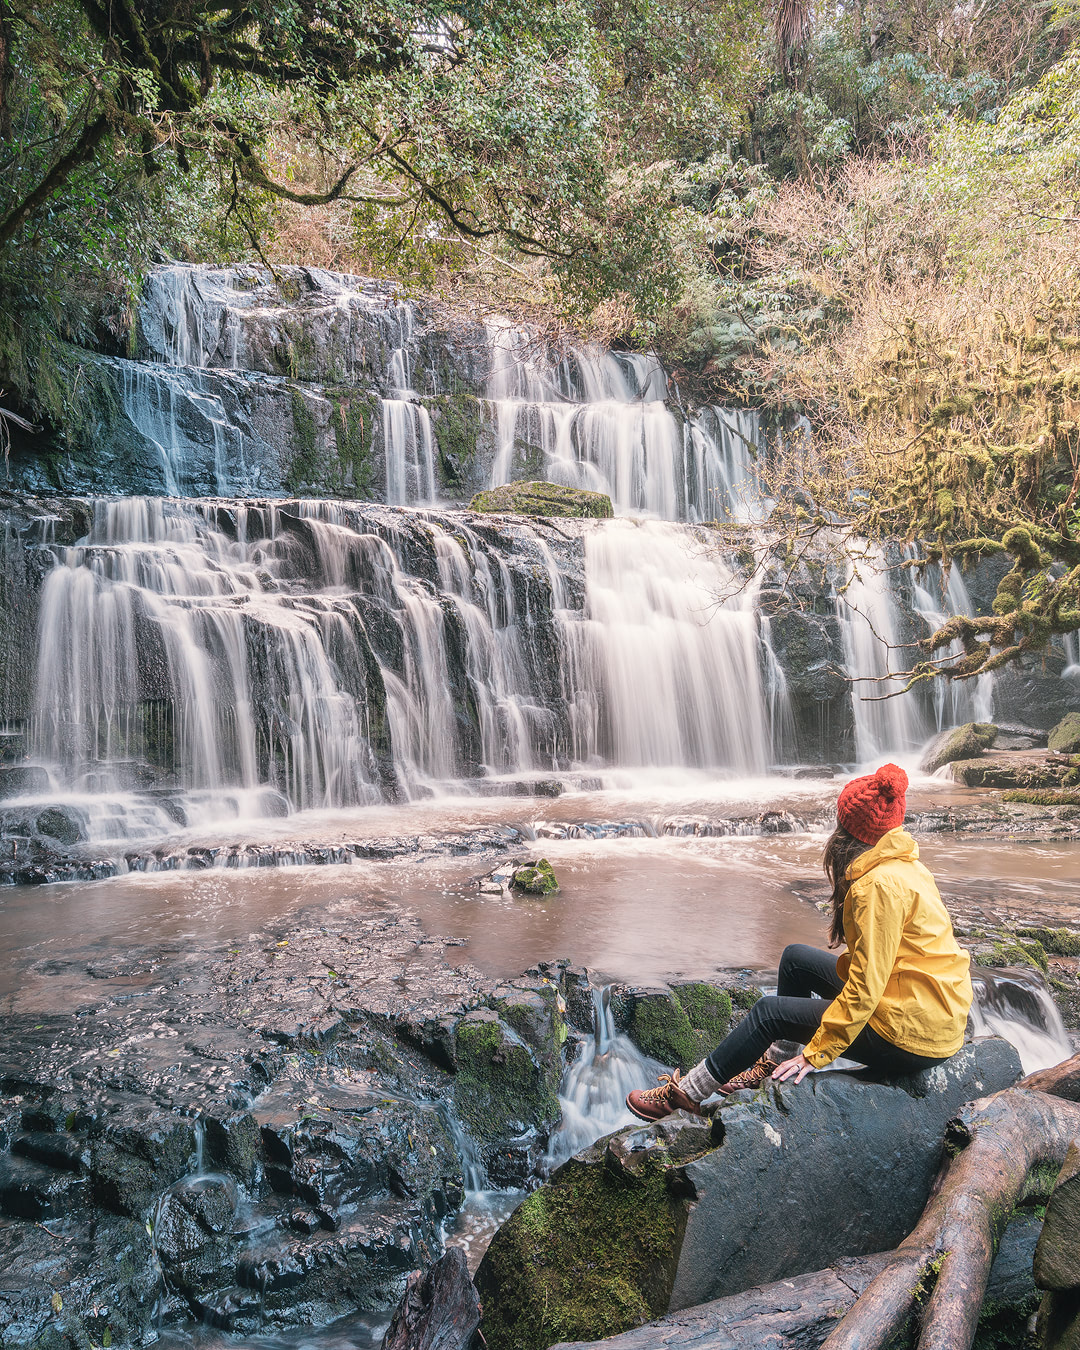 12 MUST SEE PLACES ON THE SOUTH ISLAND OF NEW ZEALAND - CATLINS COAST PUREKAUNUI FALLS